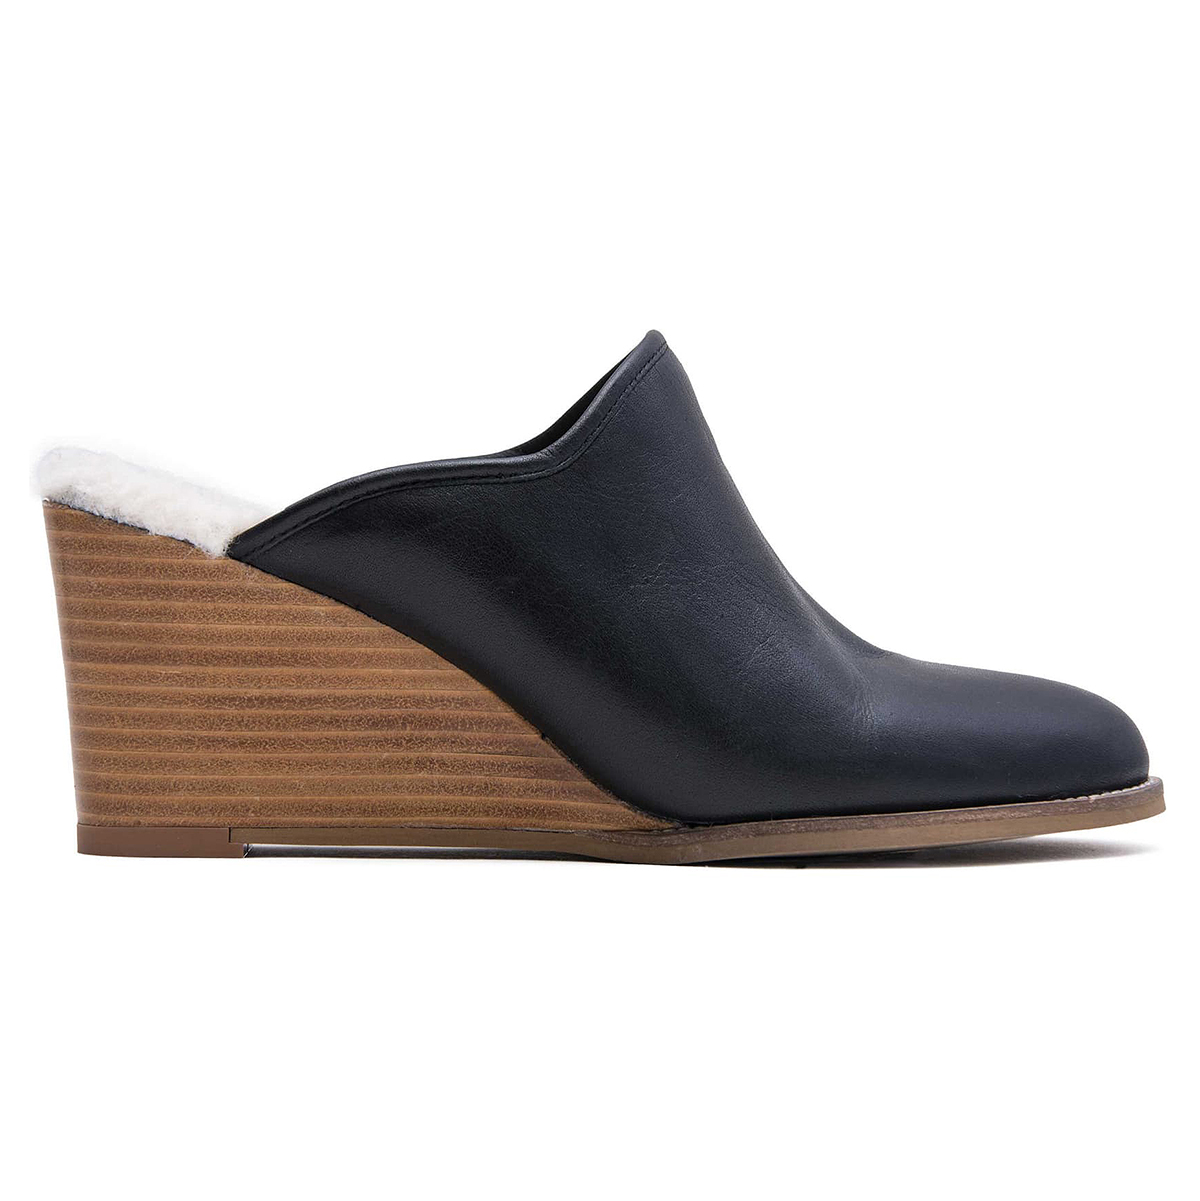 The Best Way to Wear Mules in the Winter (While Saving 30%)